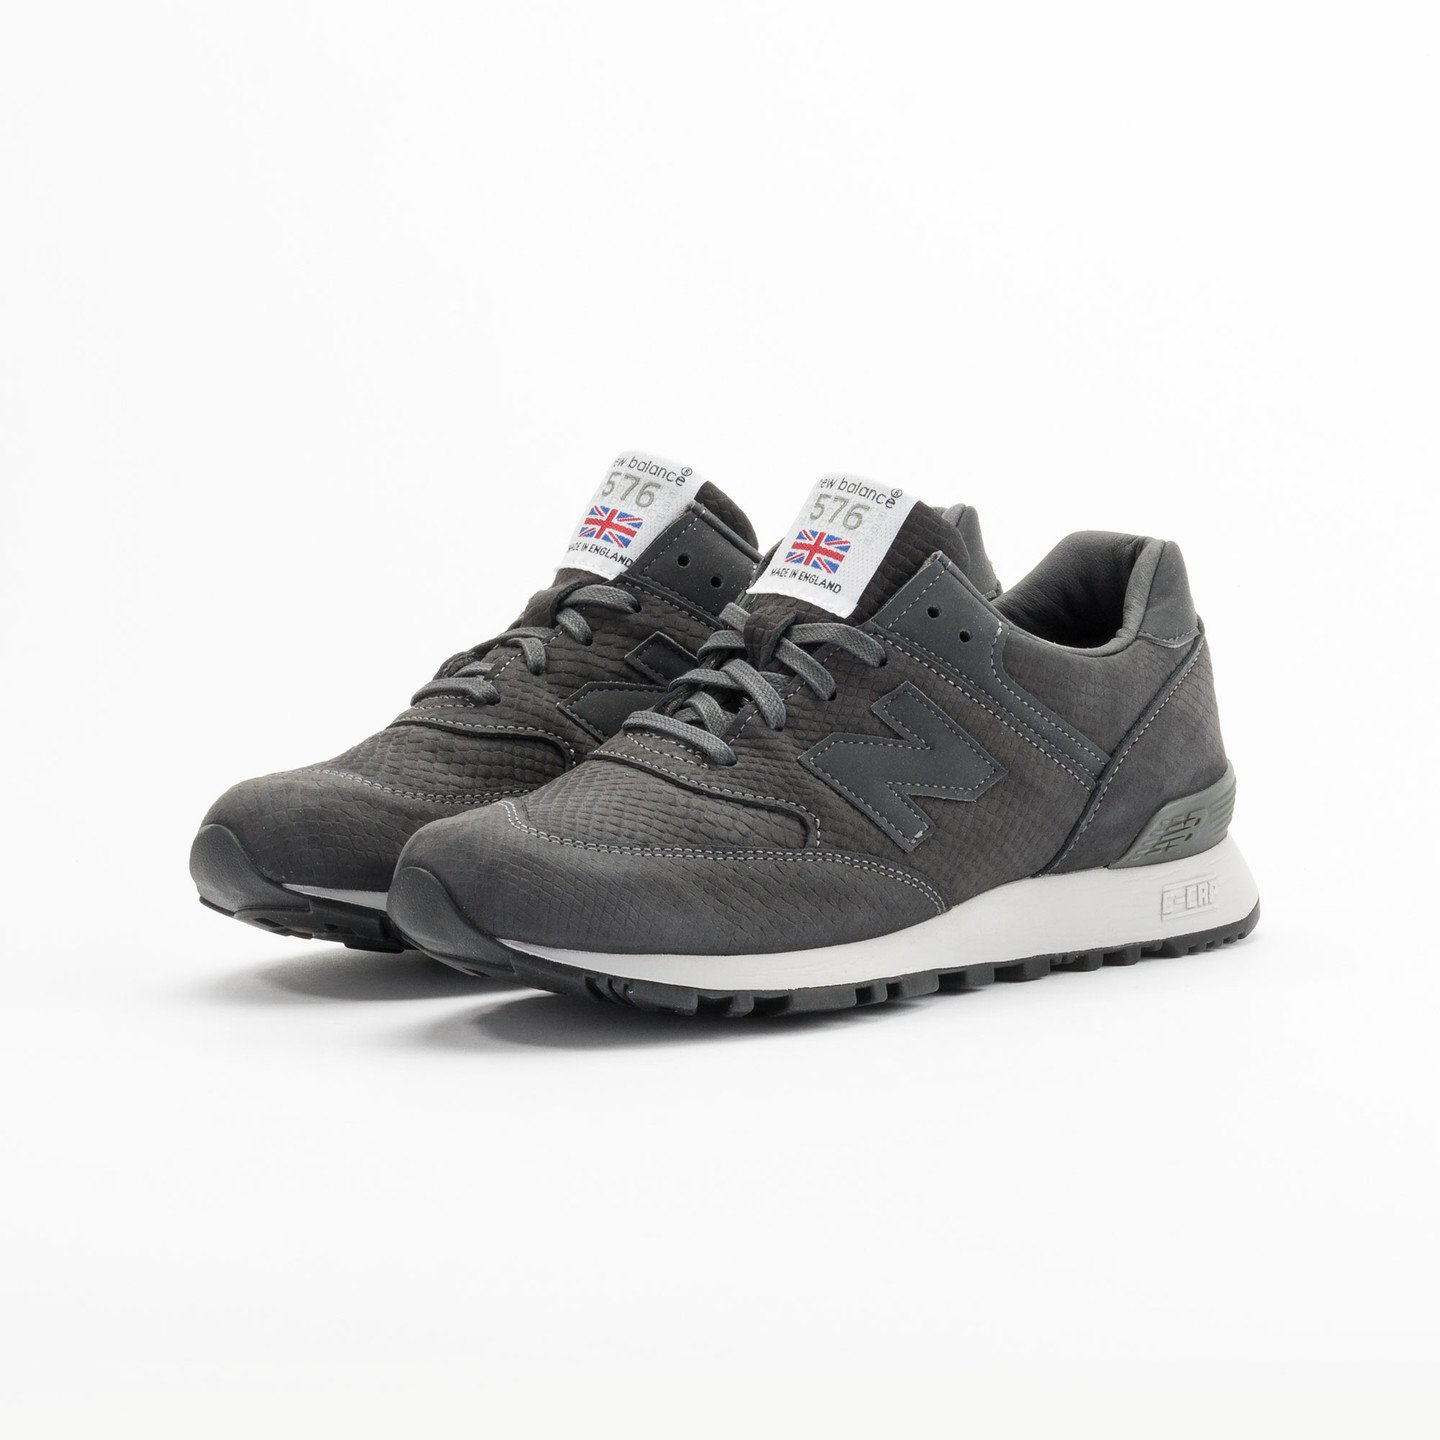 New Balance W576 NRG Made in England Dark Grey W576NRG-38